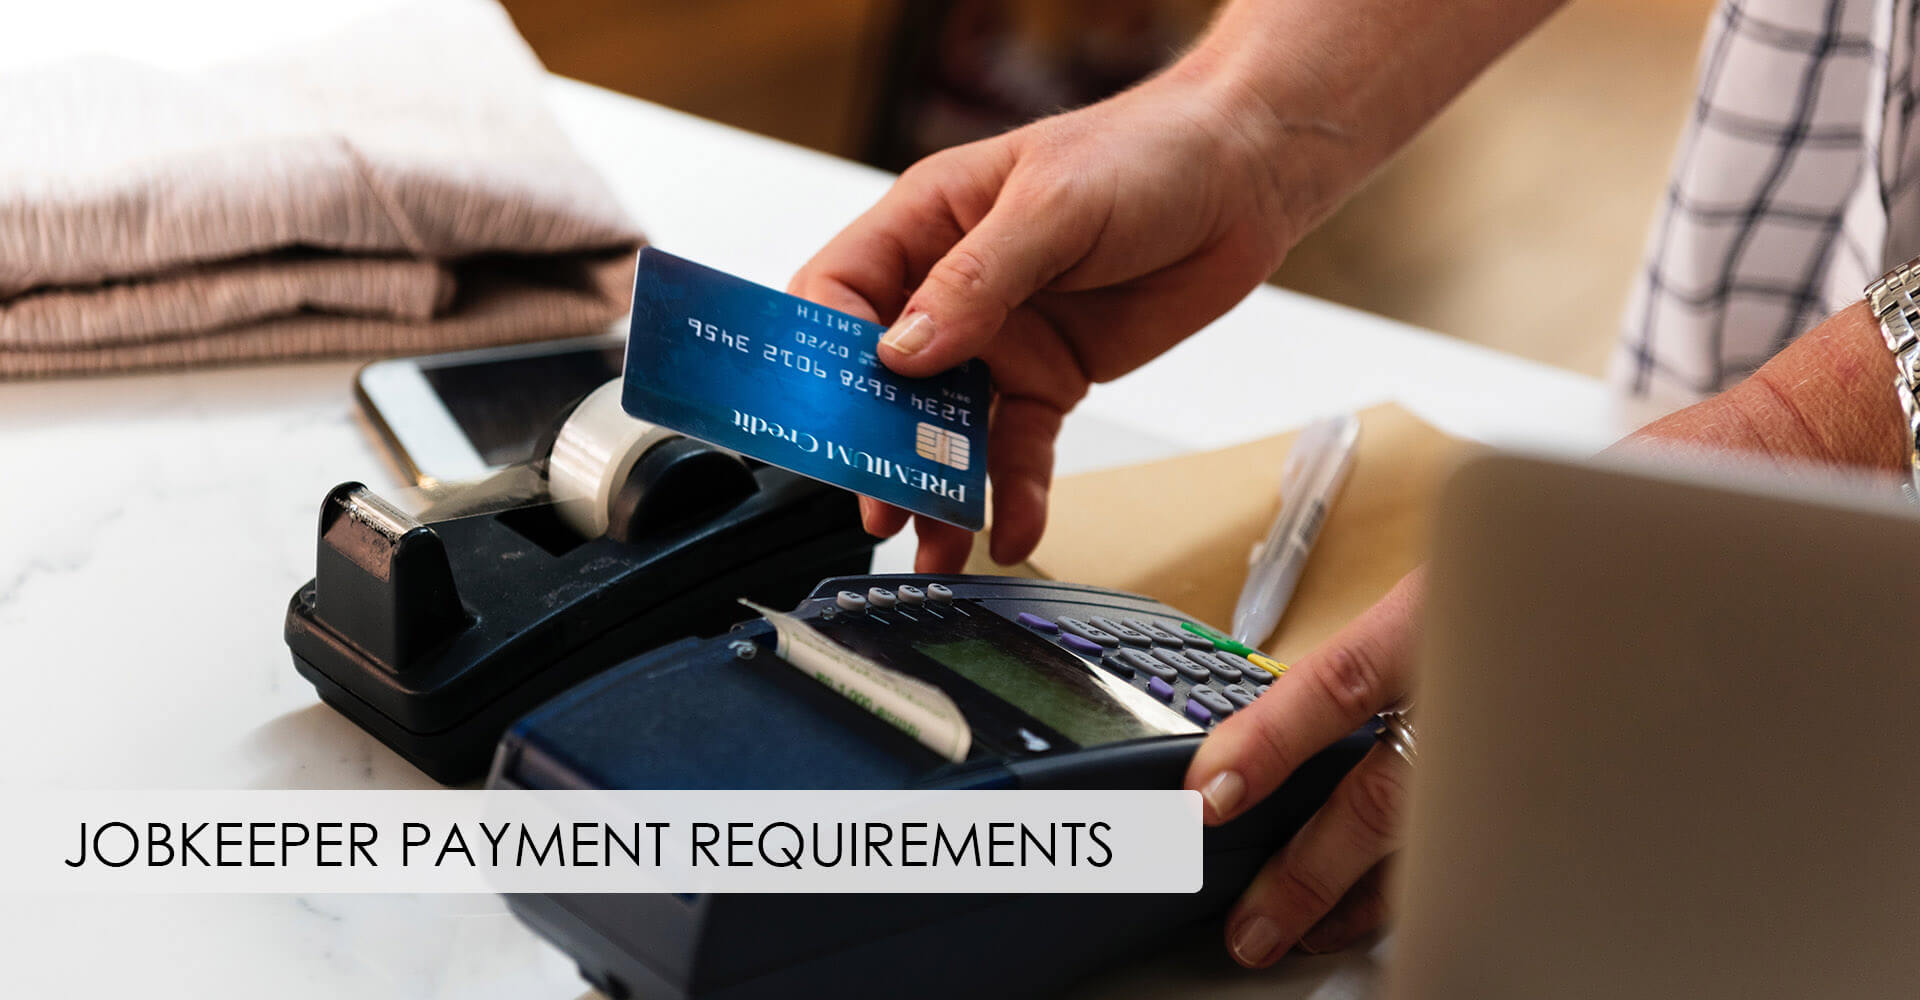 JobKeeper Payment Requirements